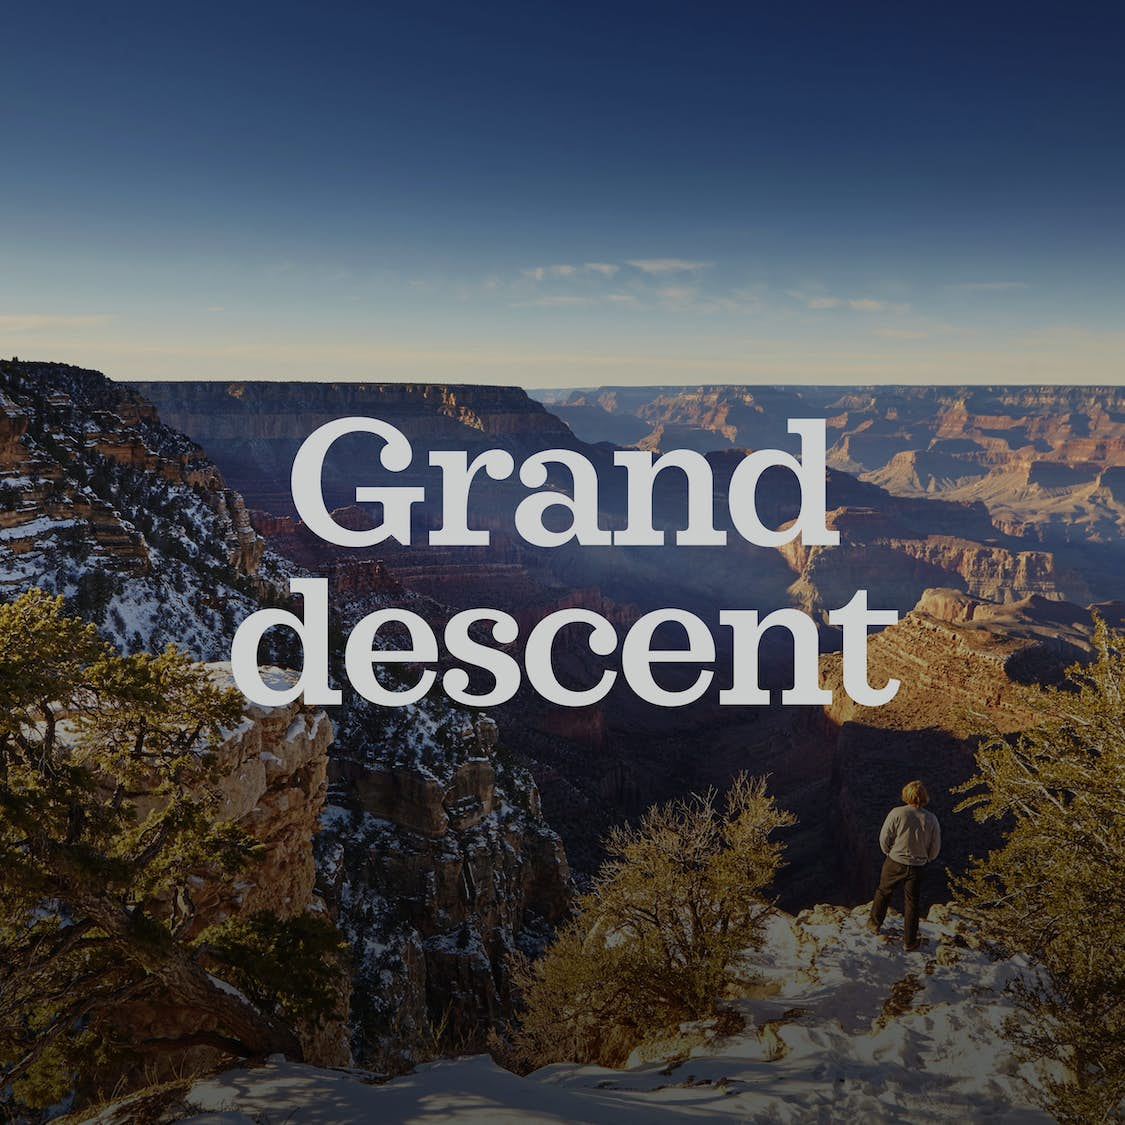 A descent into the Grand Canyon in the low season